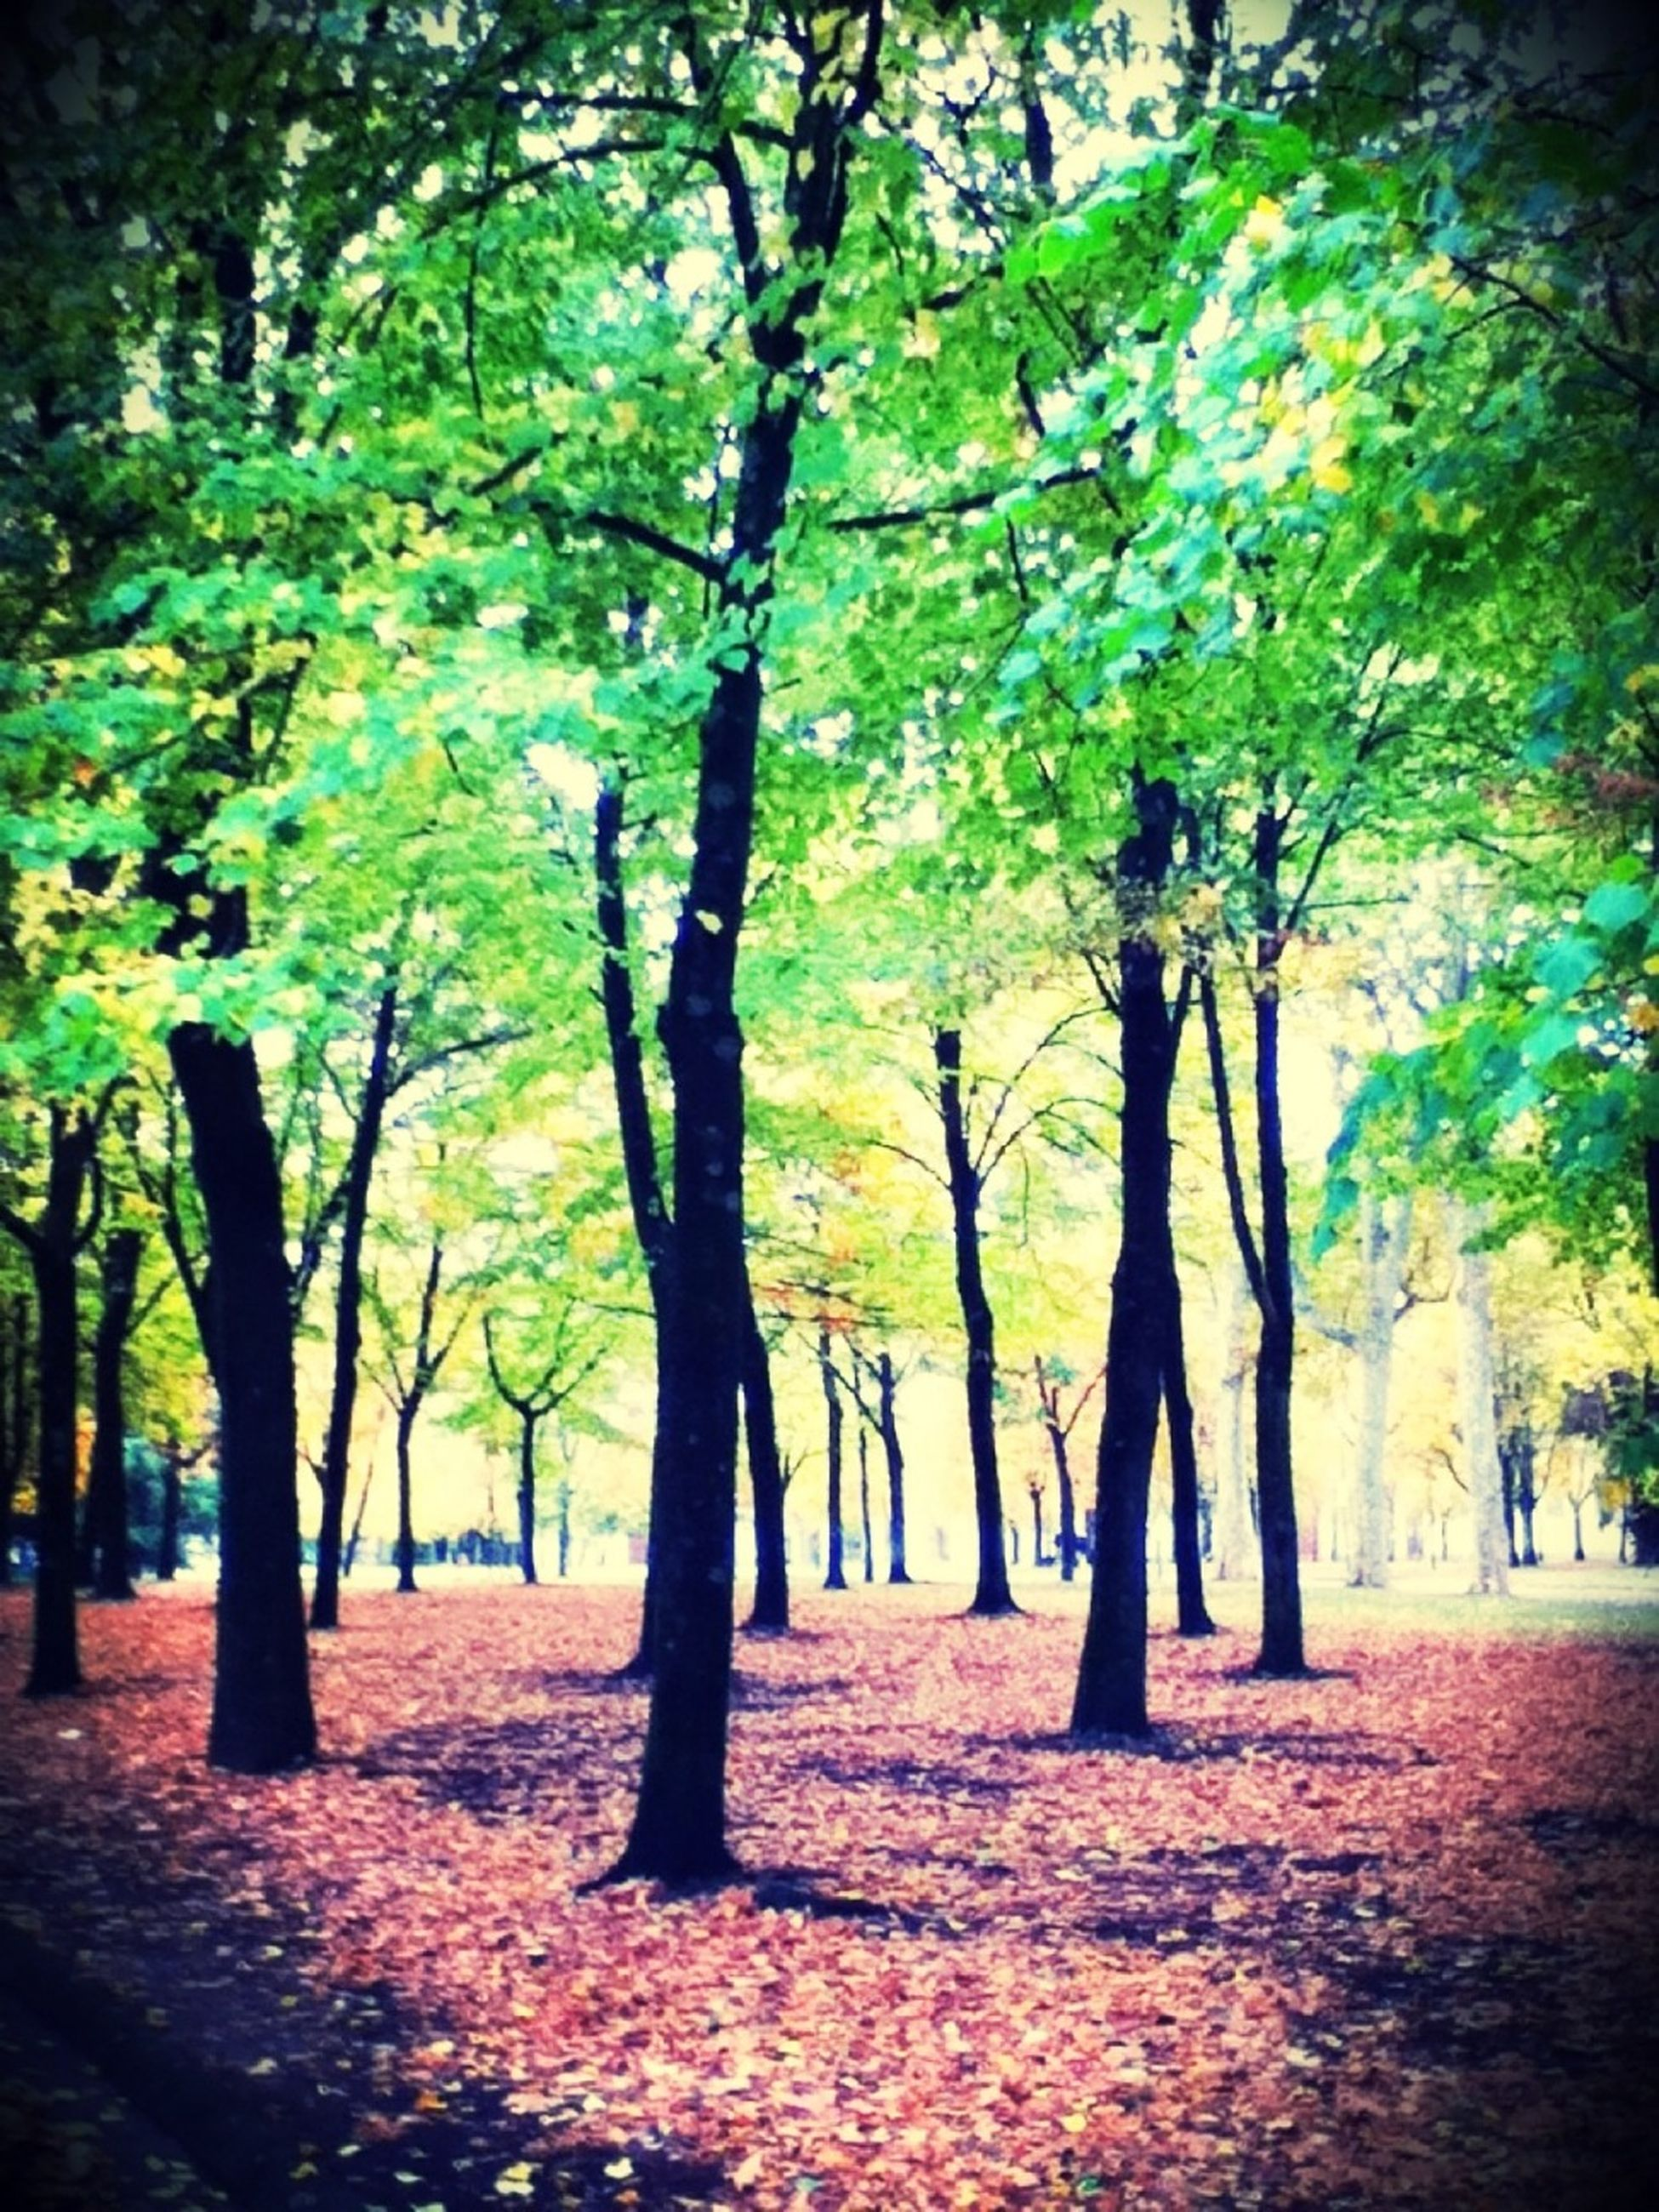 tree, tree trunk, autumn, growth, change, tranquility, nature, beauty in nature, season, tranquil scene, branch, park - man made space, scenics, yellow, forest, treelined, leaf, day, outdoors, no people